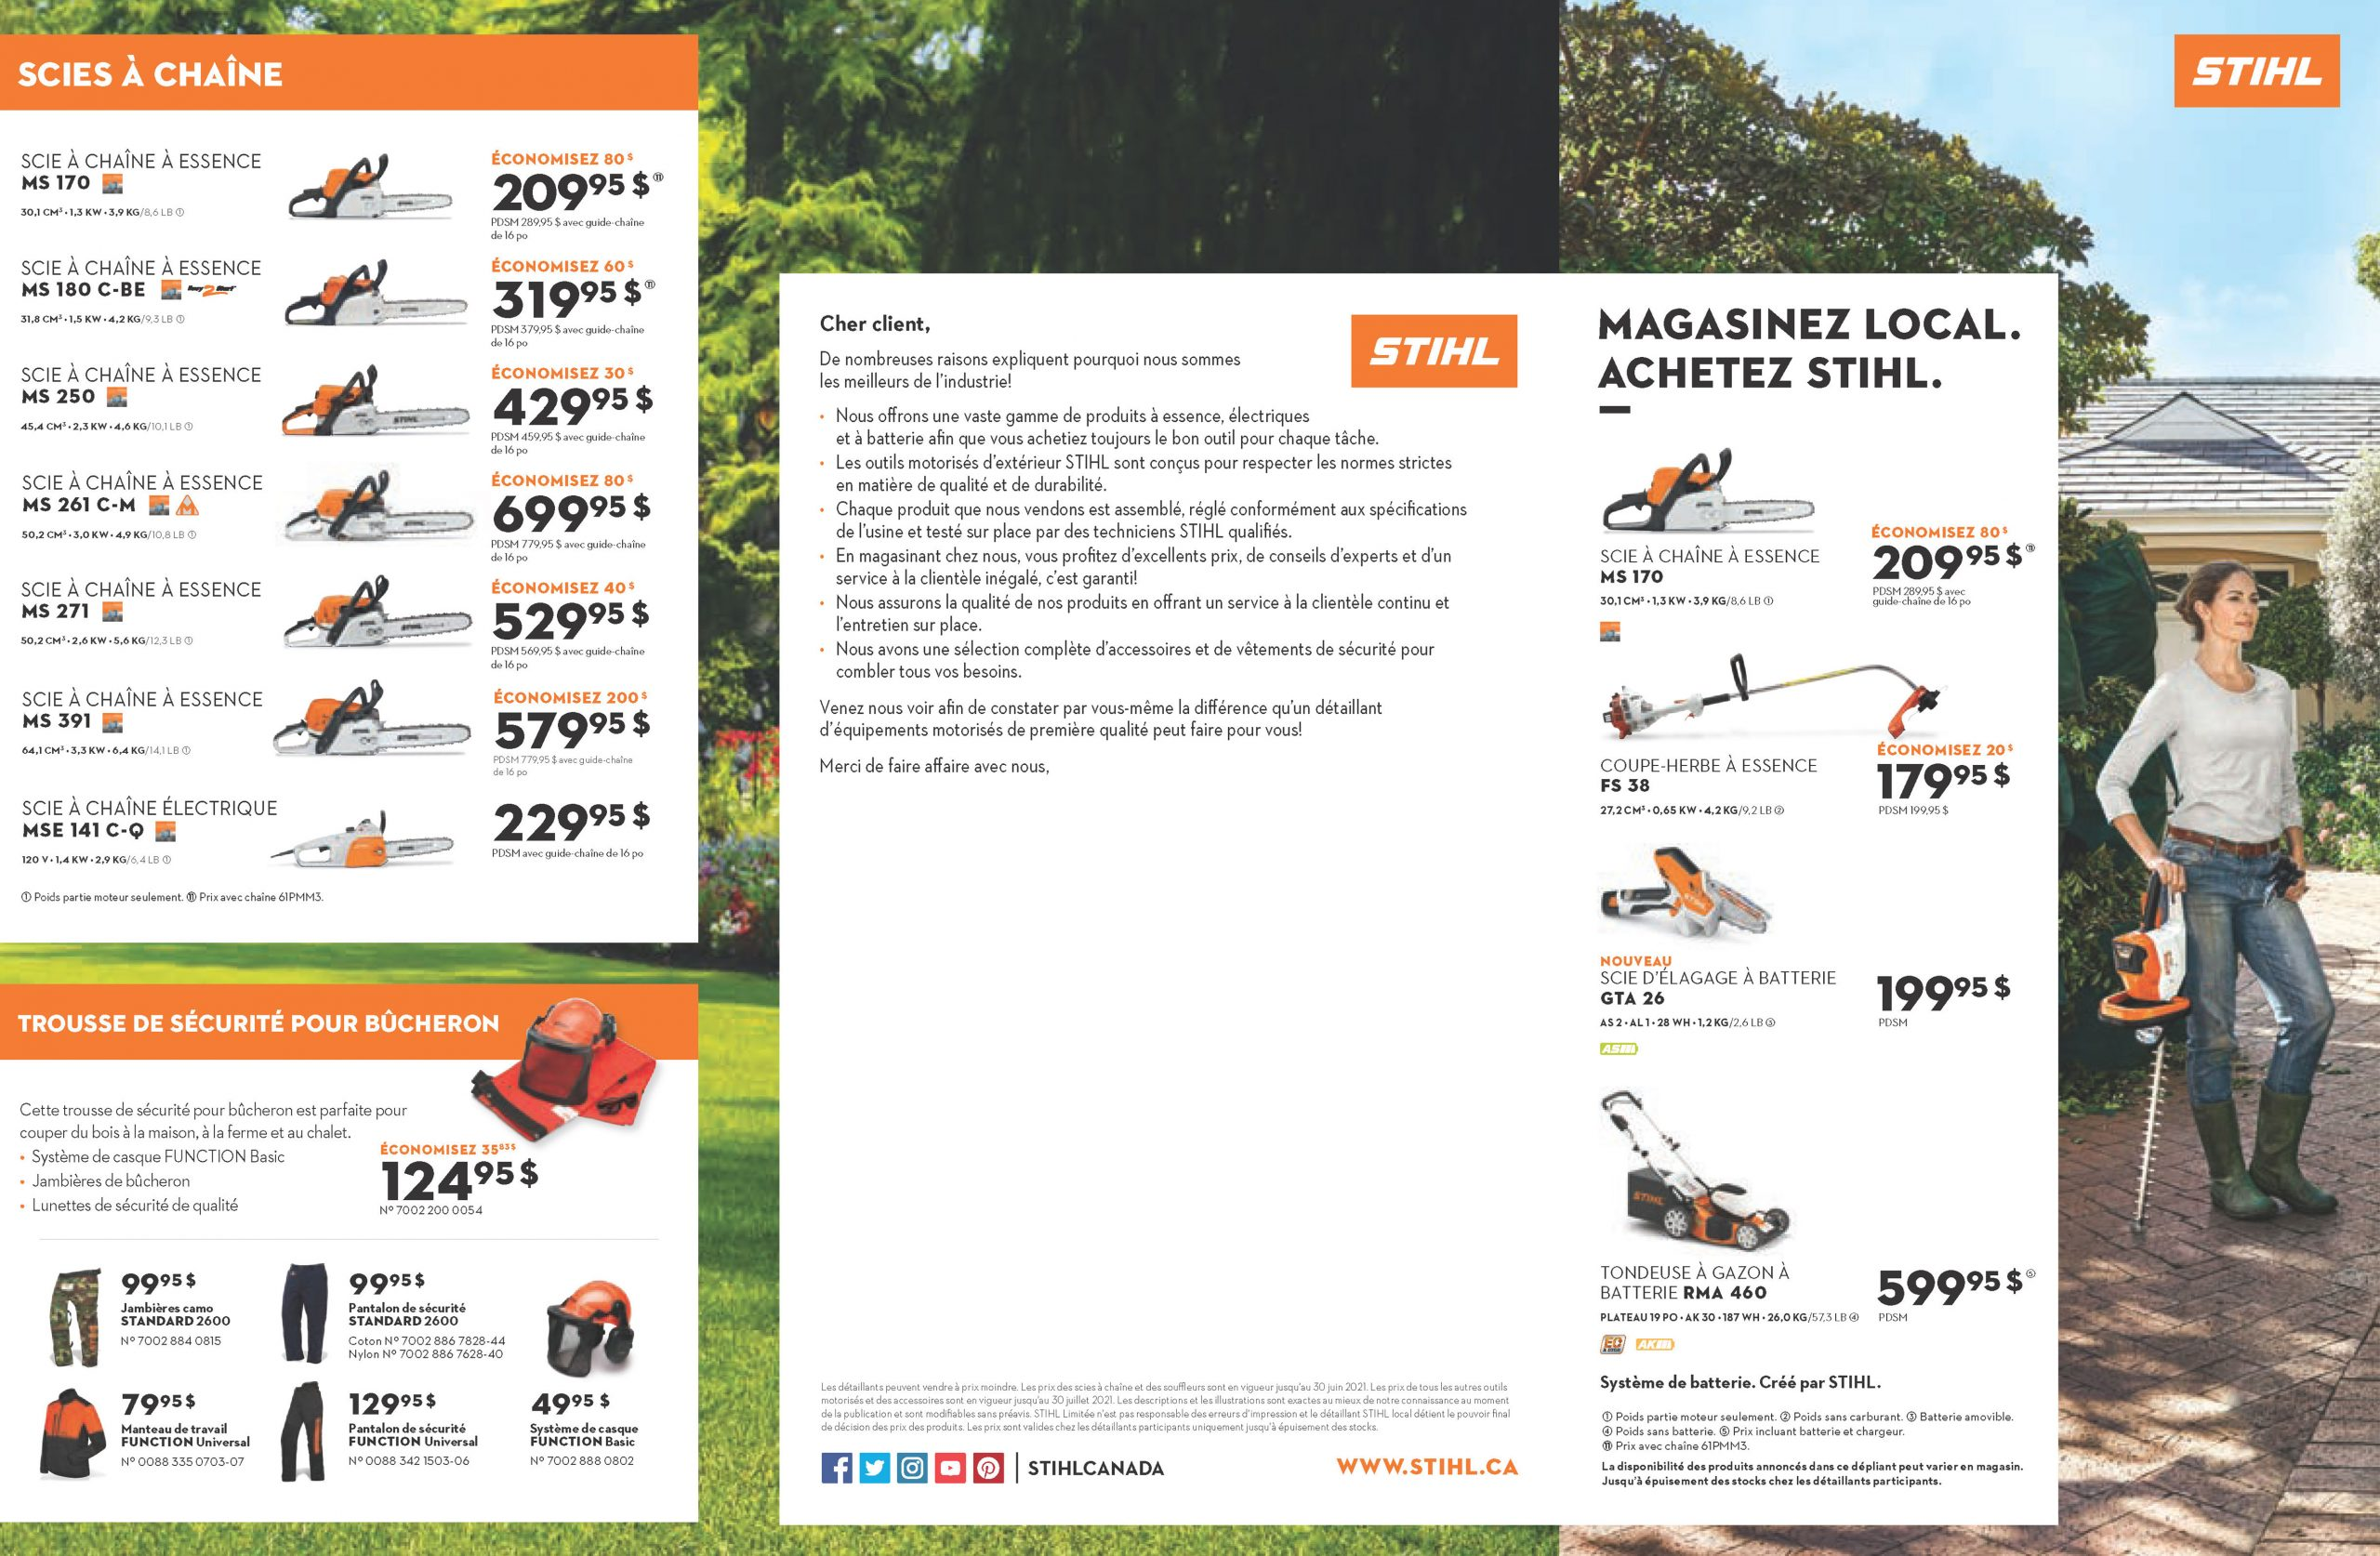 page 1 promotions Stihl